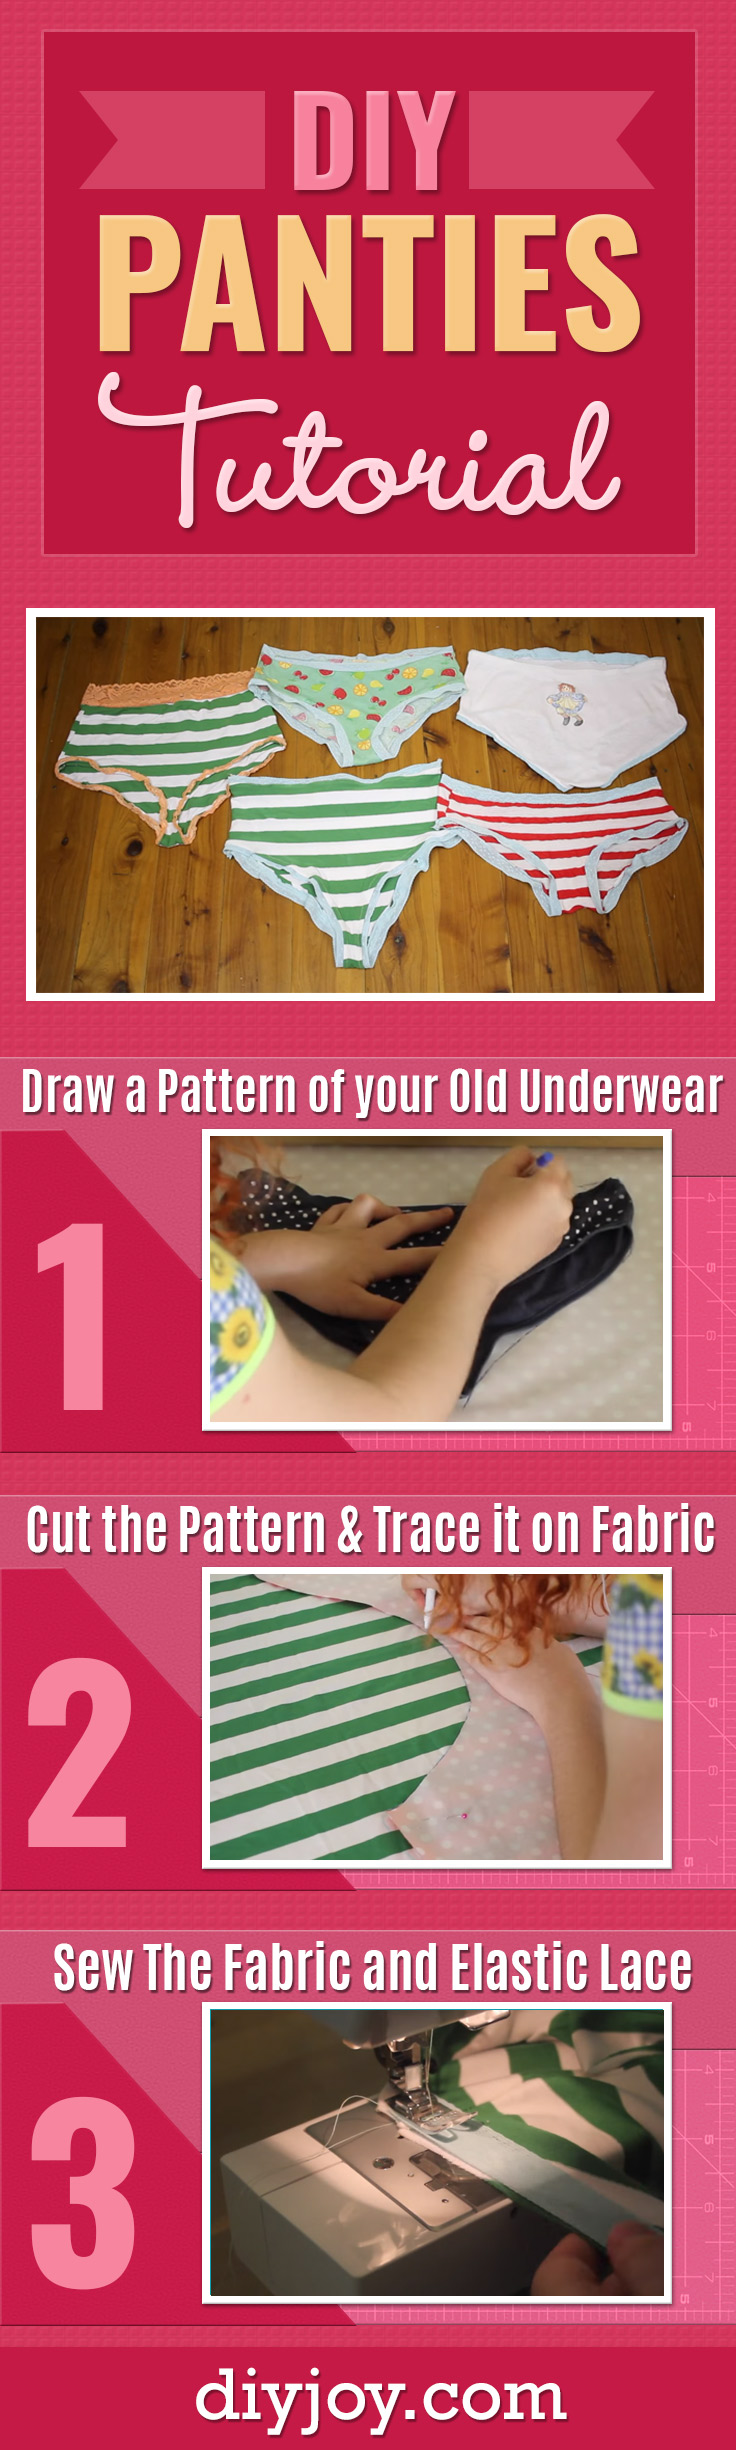 Easy Sewing Tutorials - Free Sewing Patterns - DIY Sewing Videos - DIY Panties Tutorial for Making Custom Underwear In the Fabric Of Your Choice